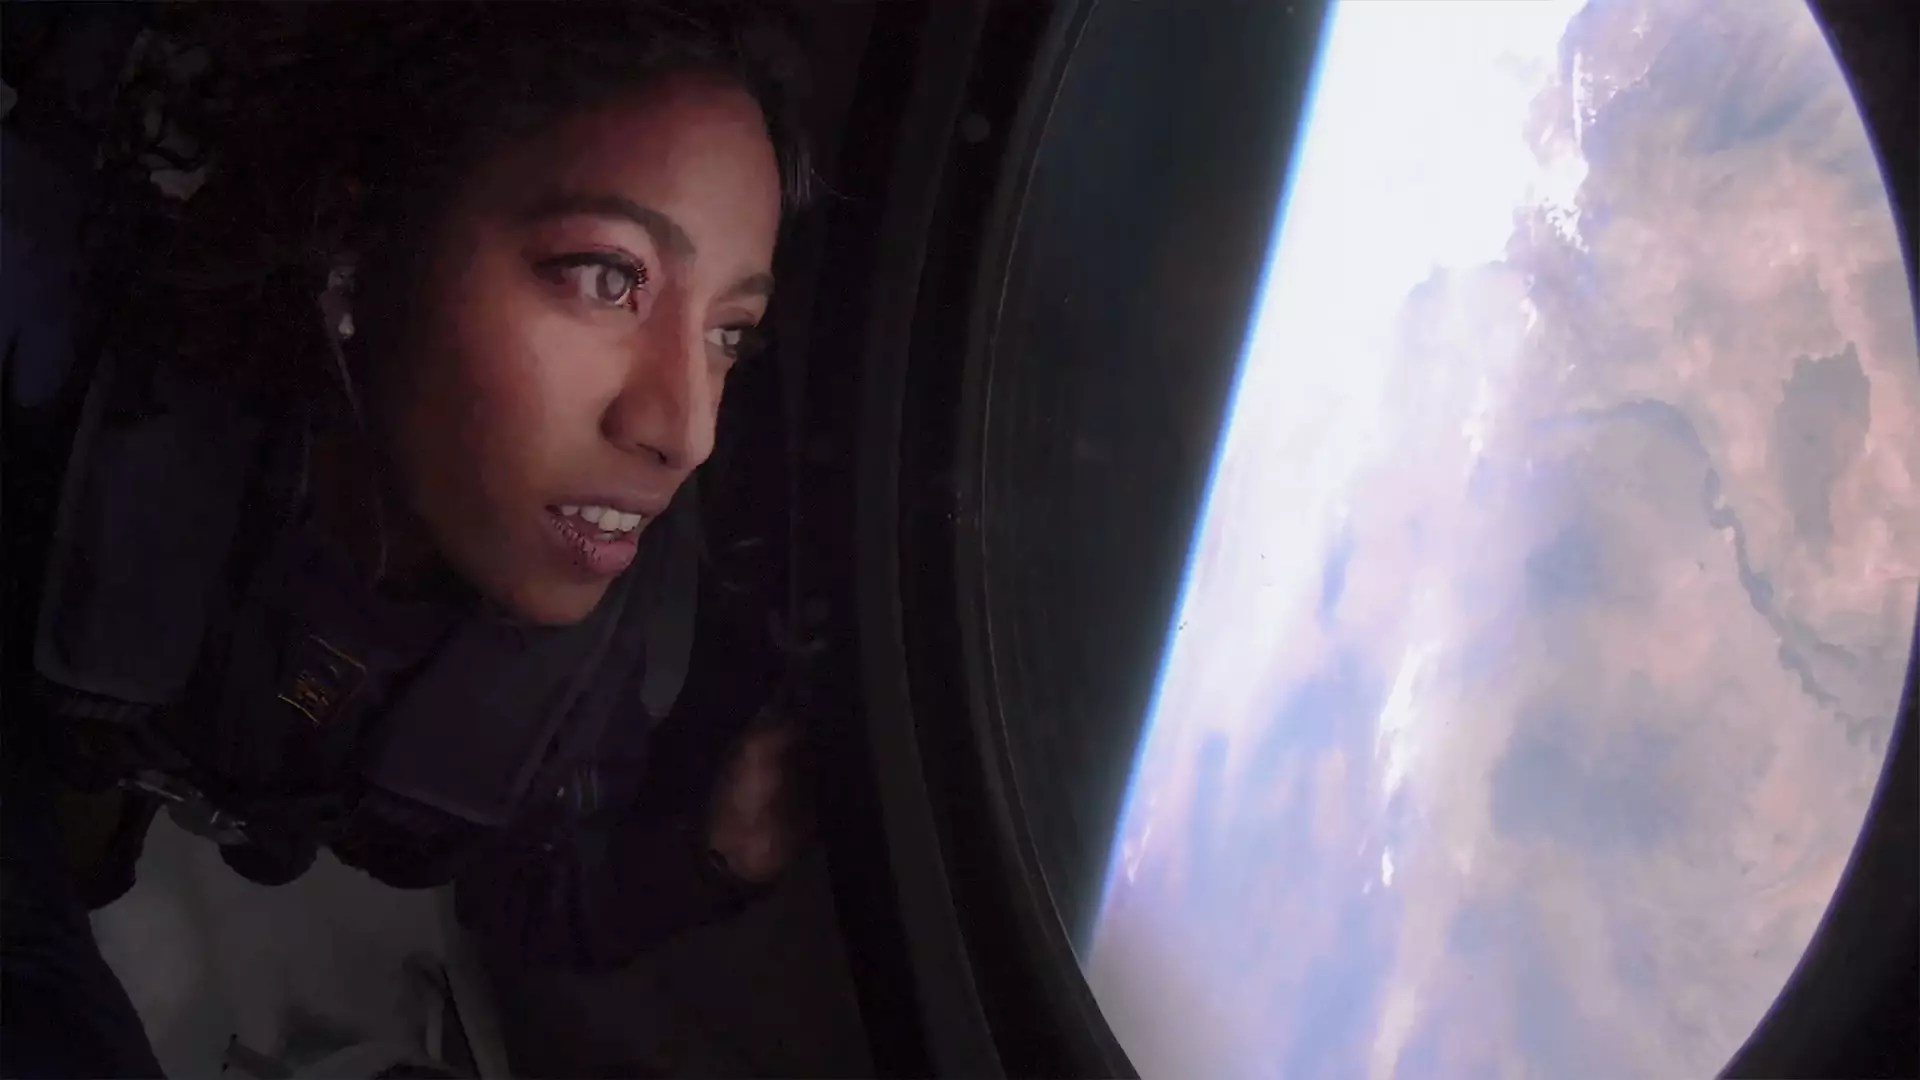 A woman looks out a window at Earth from a Virgin Galactic spaceship.